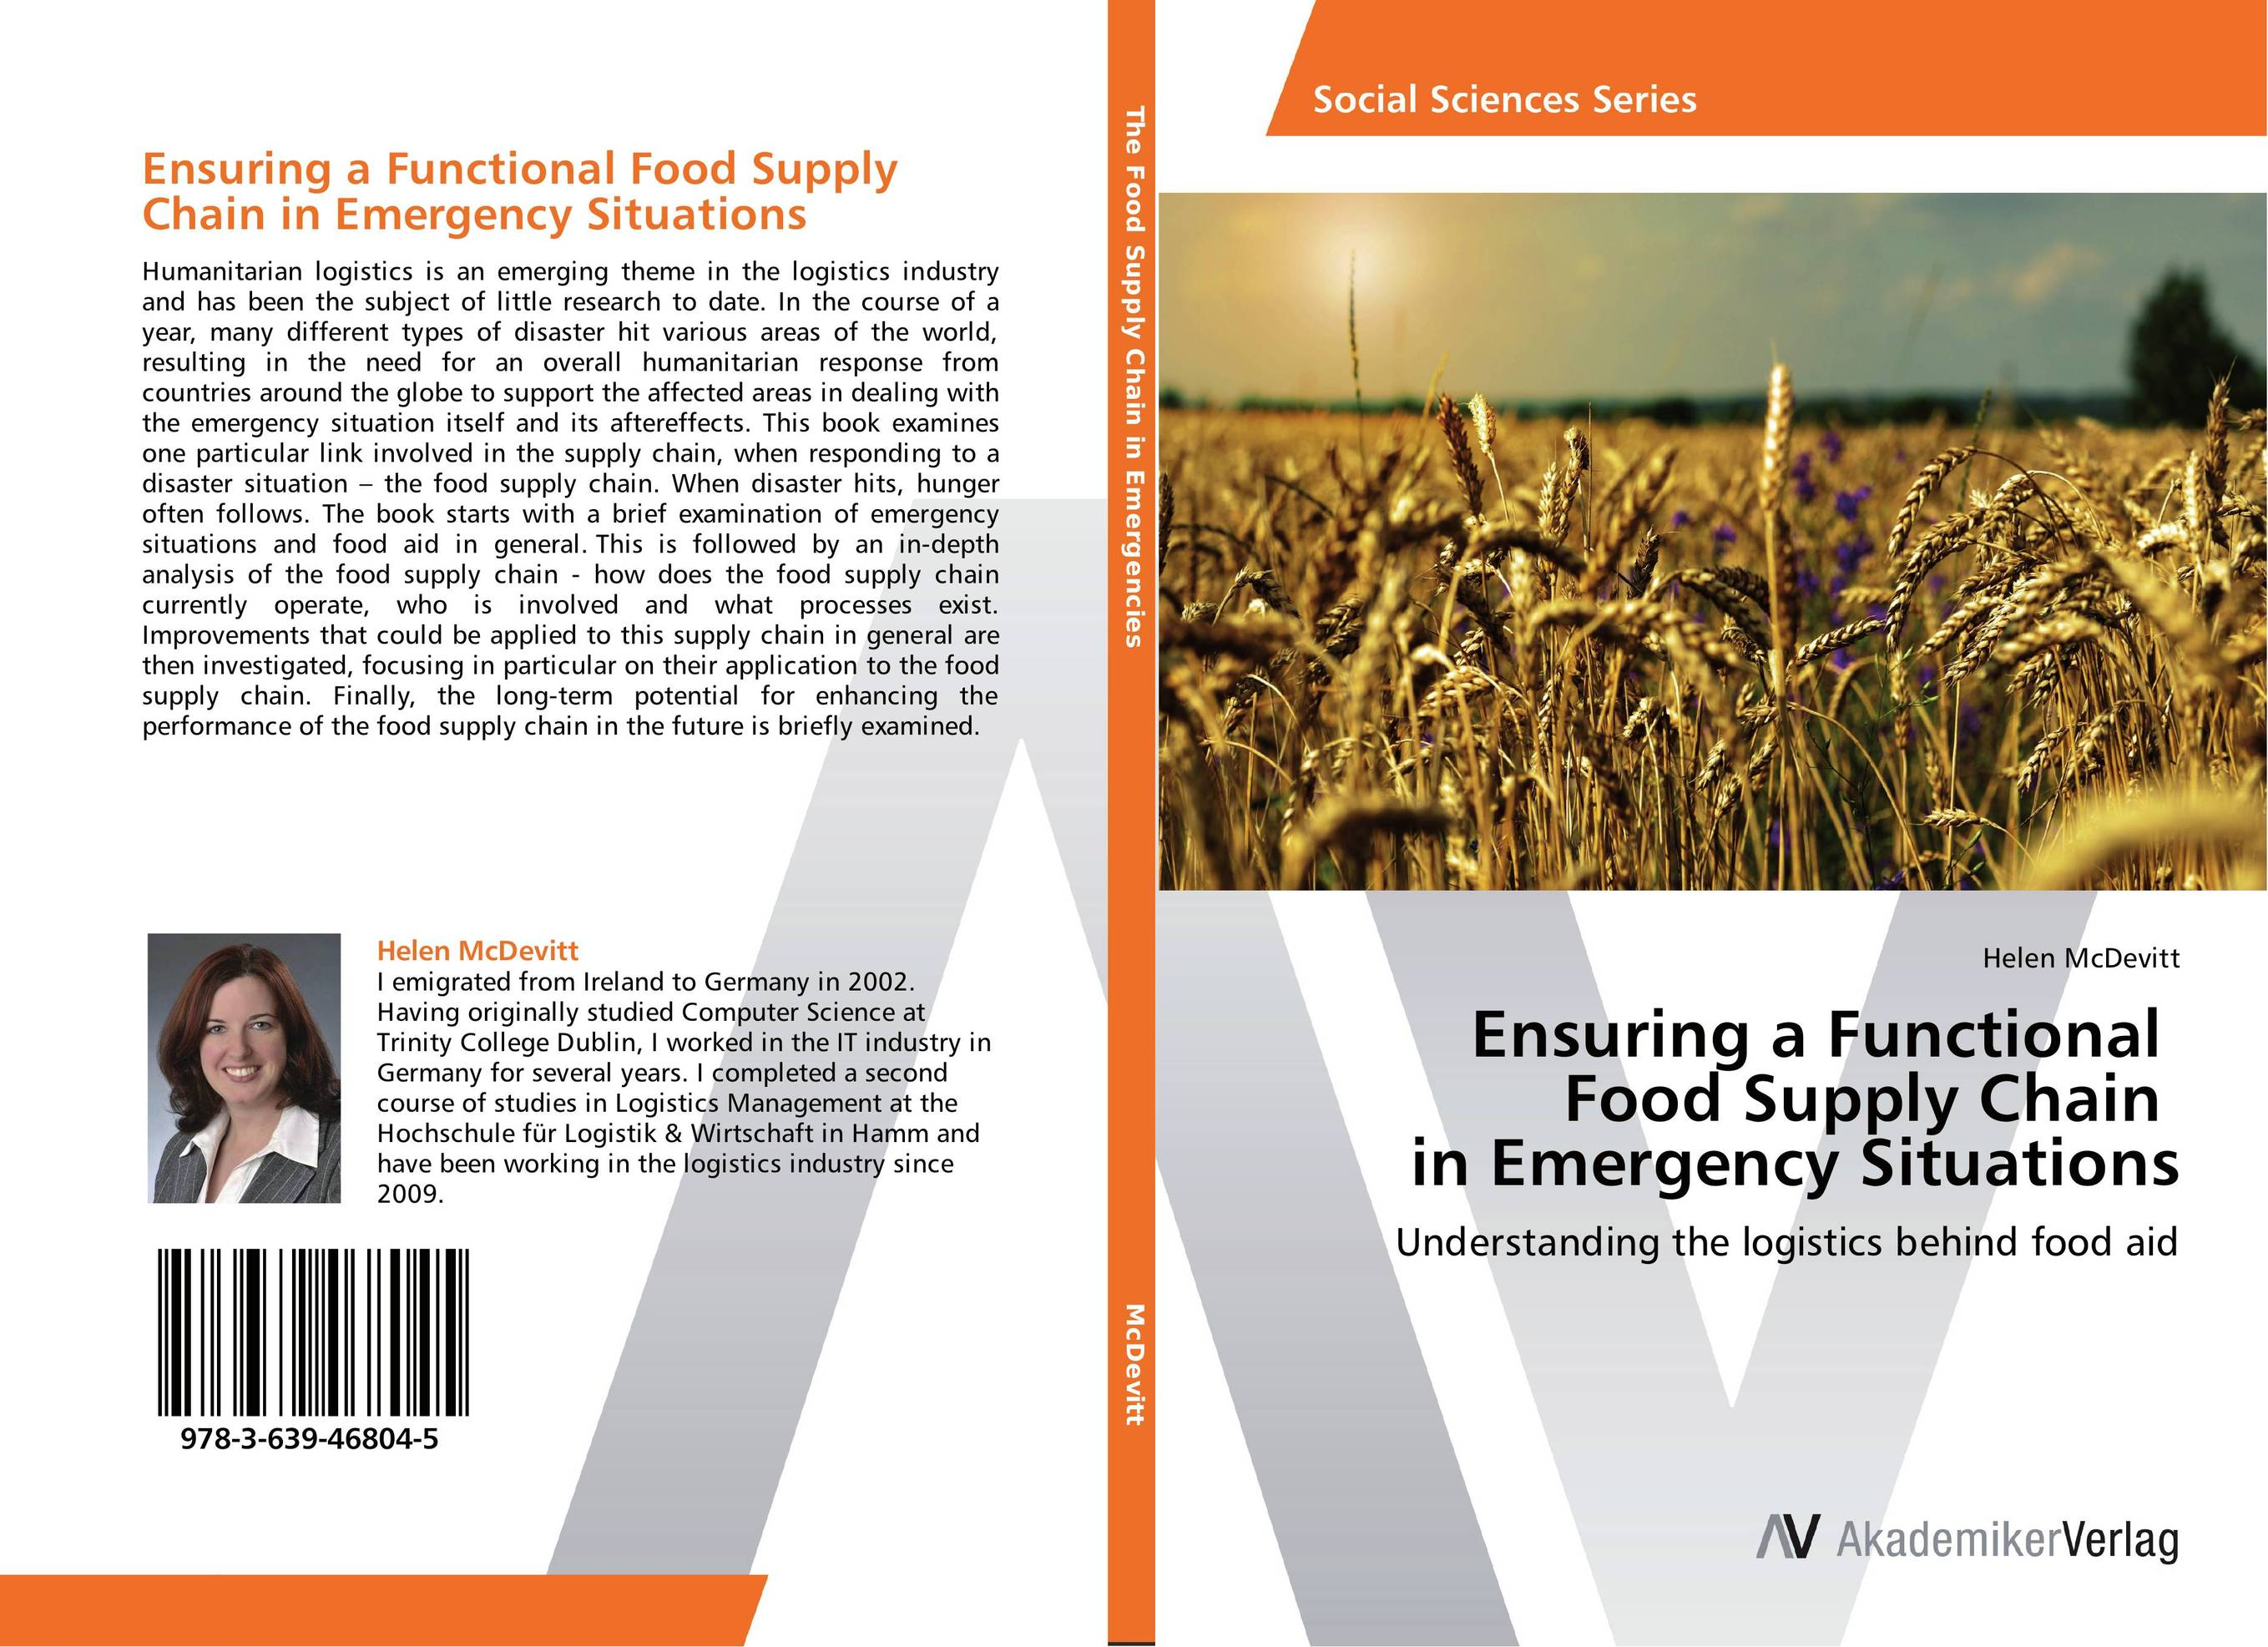 Ensuring a Functional Food Supply Chain in Emergency Situations